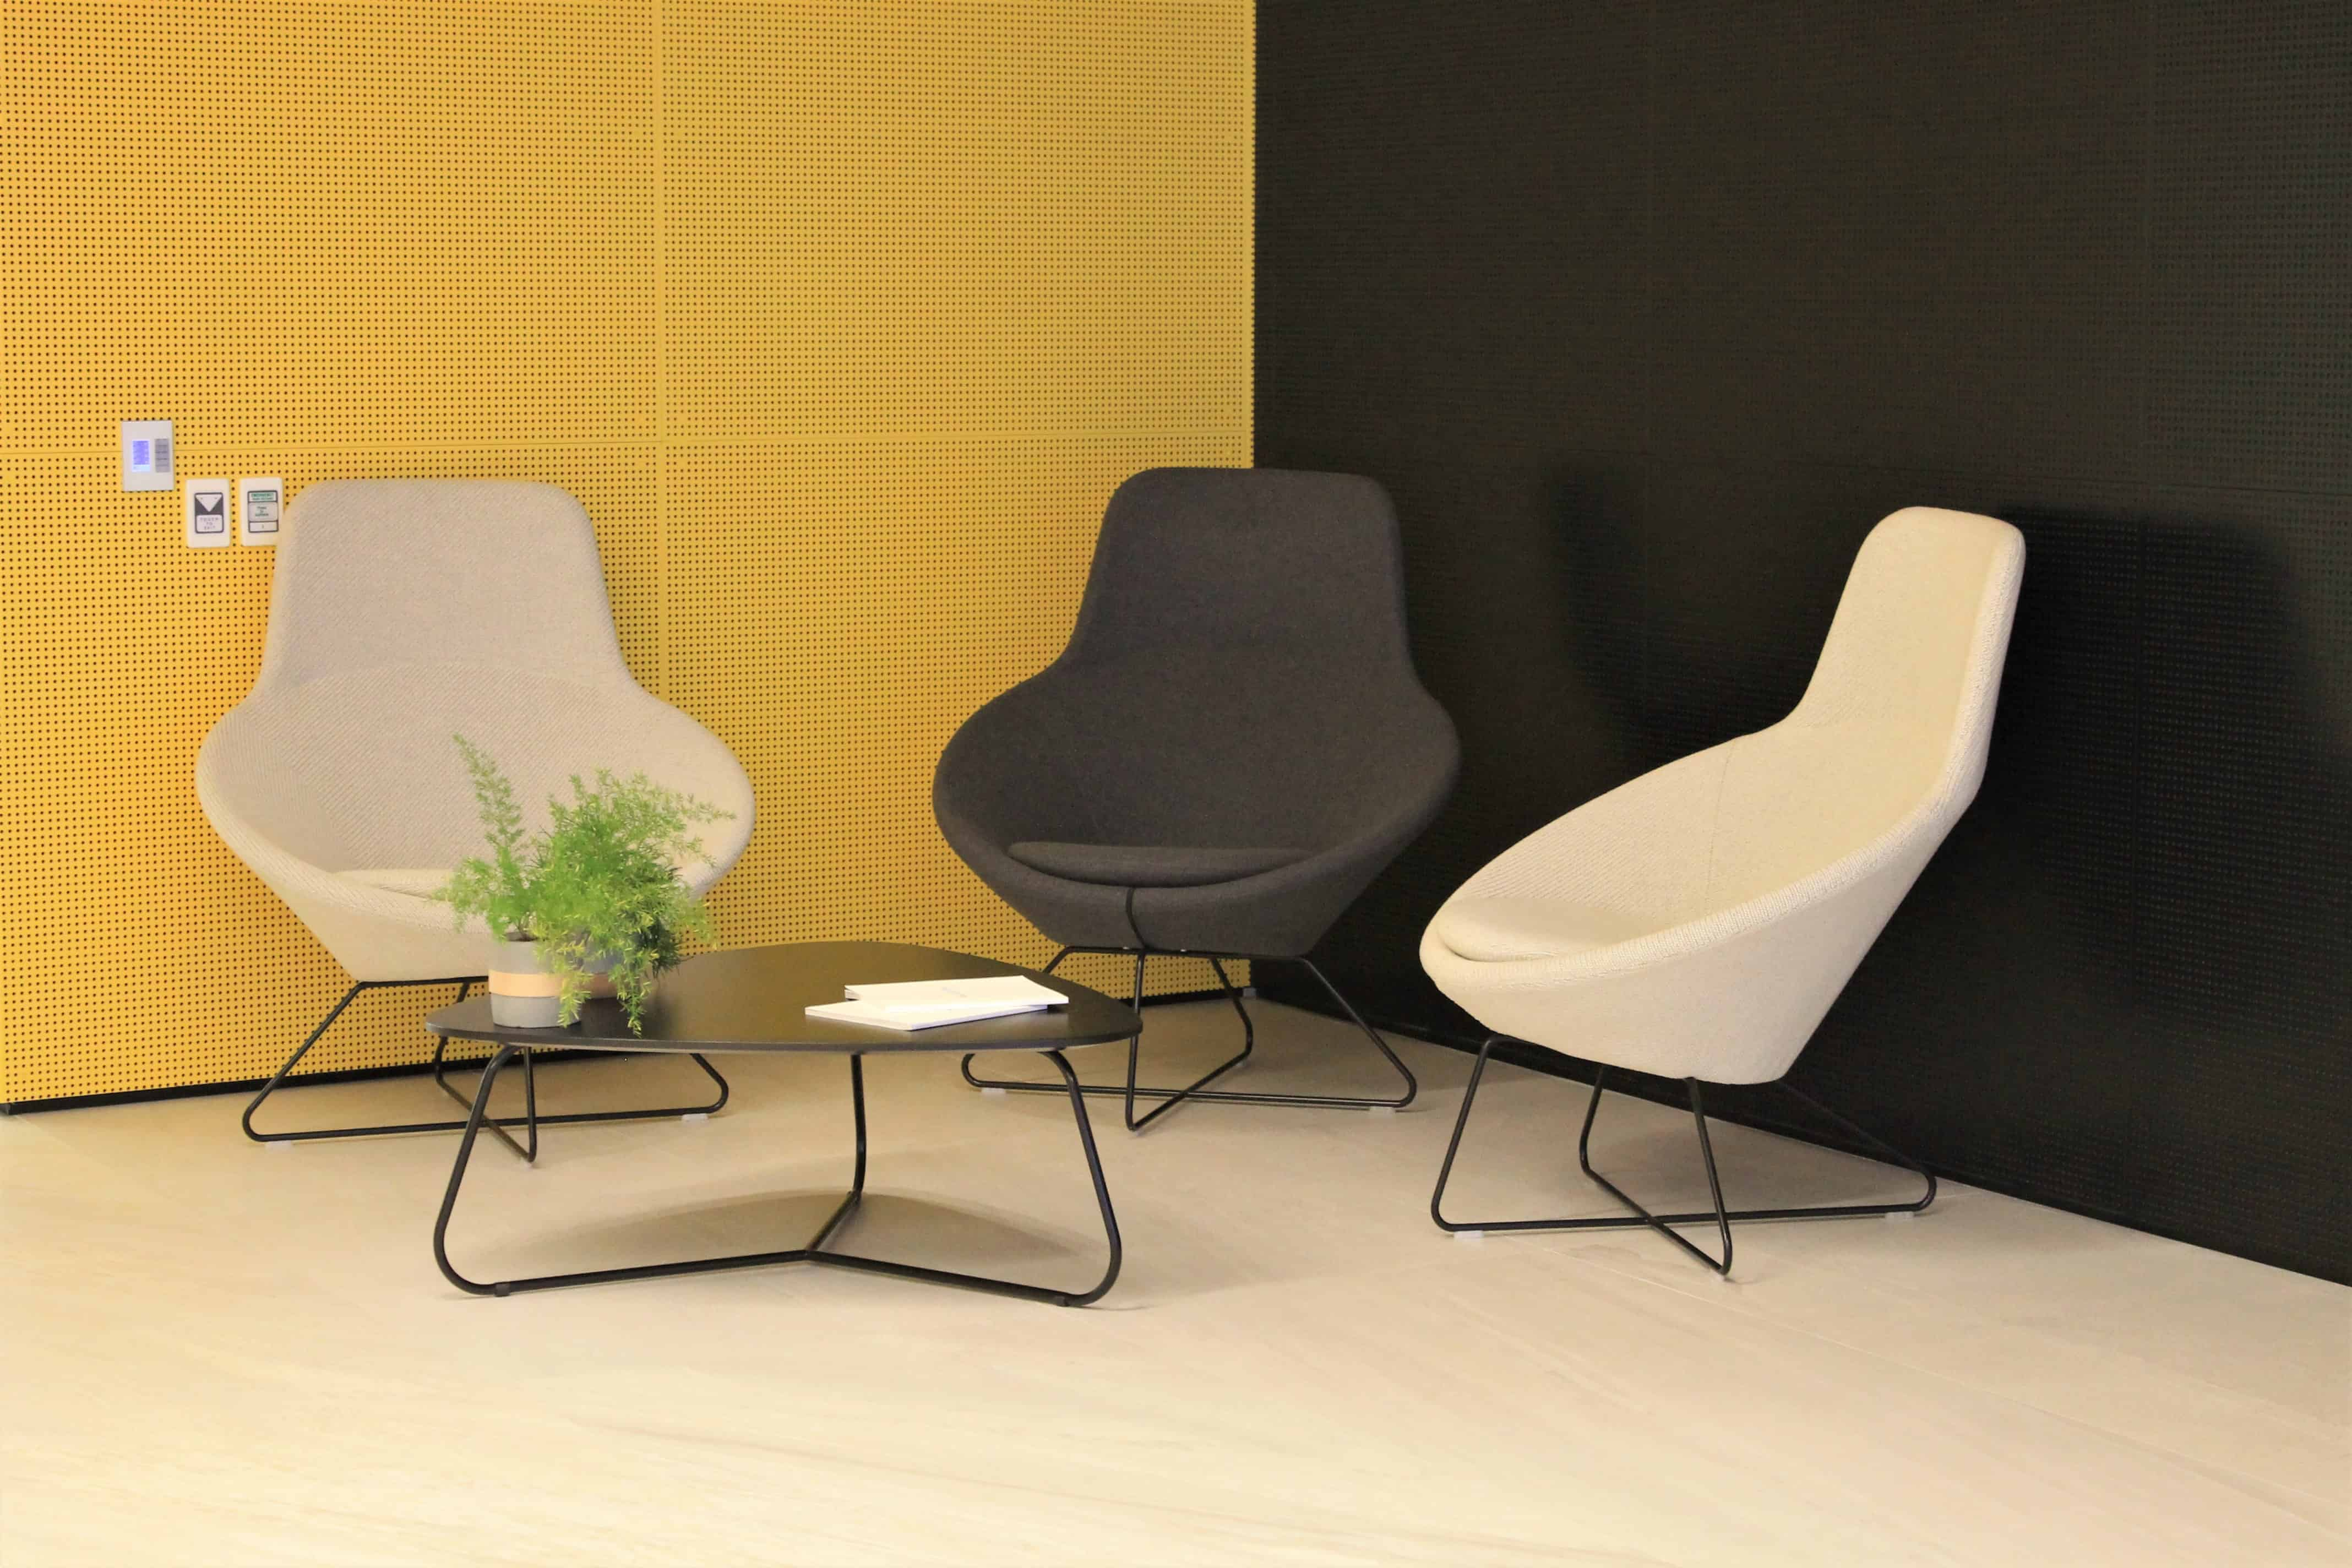 IBM office in Auckland workplace waiting area design with yellow wall and low table and chairs